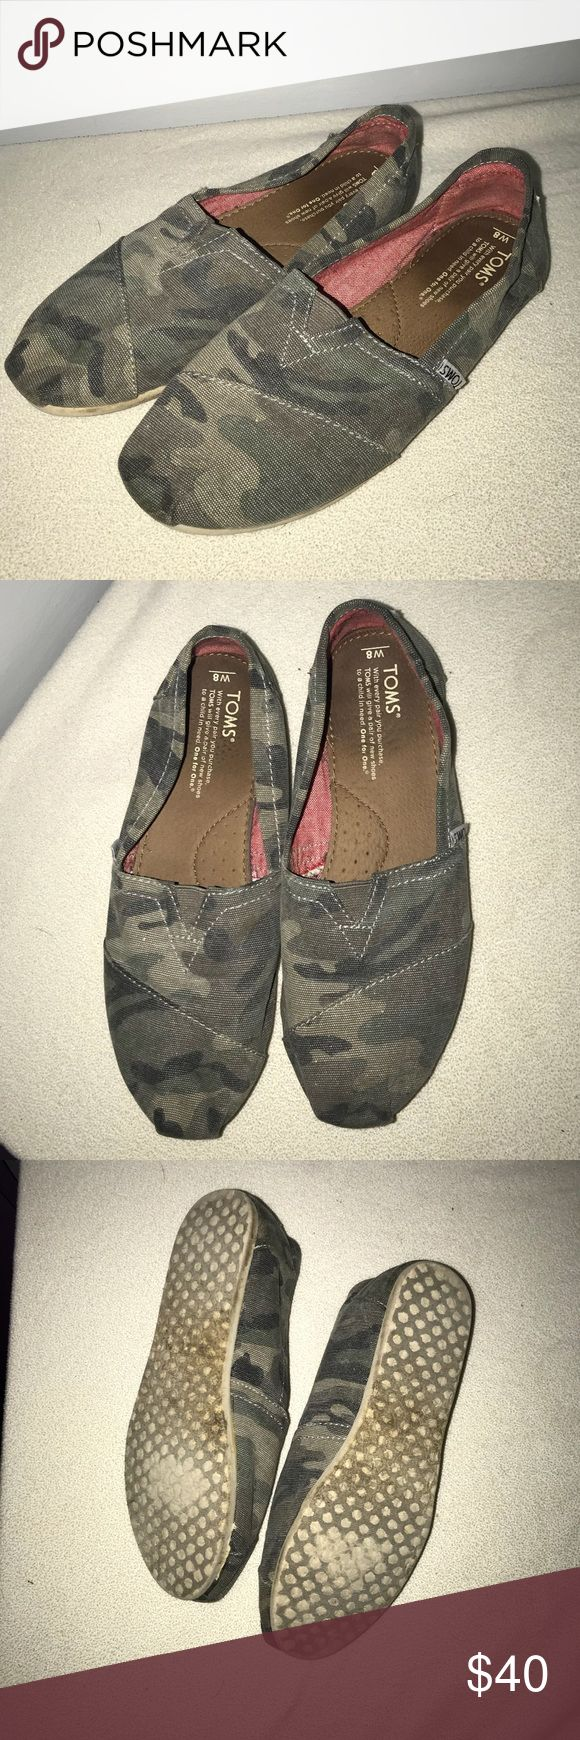 Women's Camo Toms •Women's •Size 8 •Camo Print •bottoms are dirty, but could be cleaned up easily •Only selling because I never wear them anymore •Open to offers! Toms Shoes Flats & Loafers